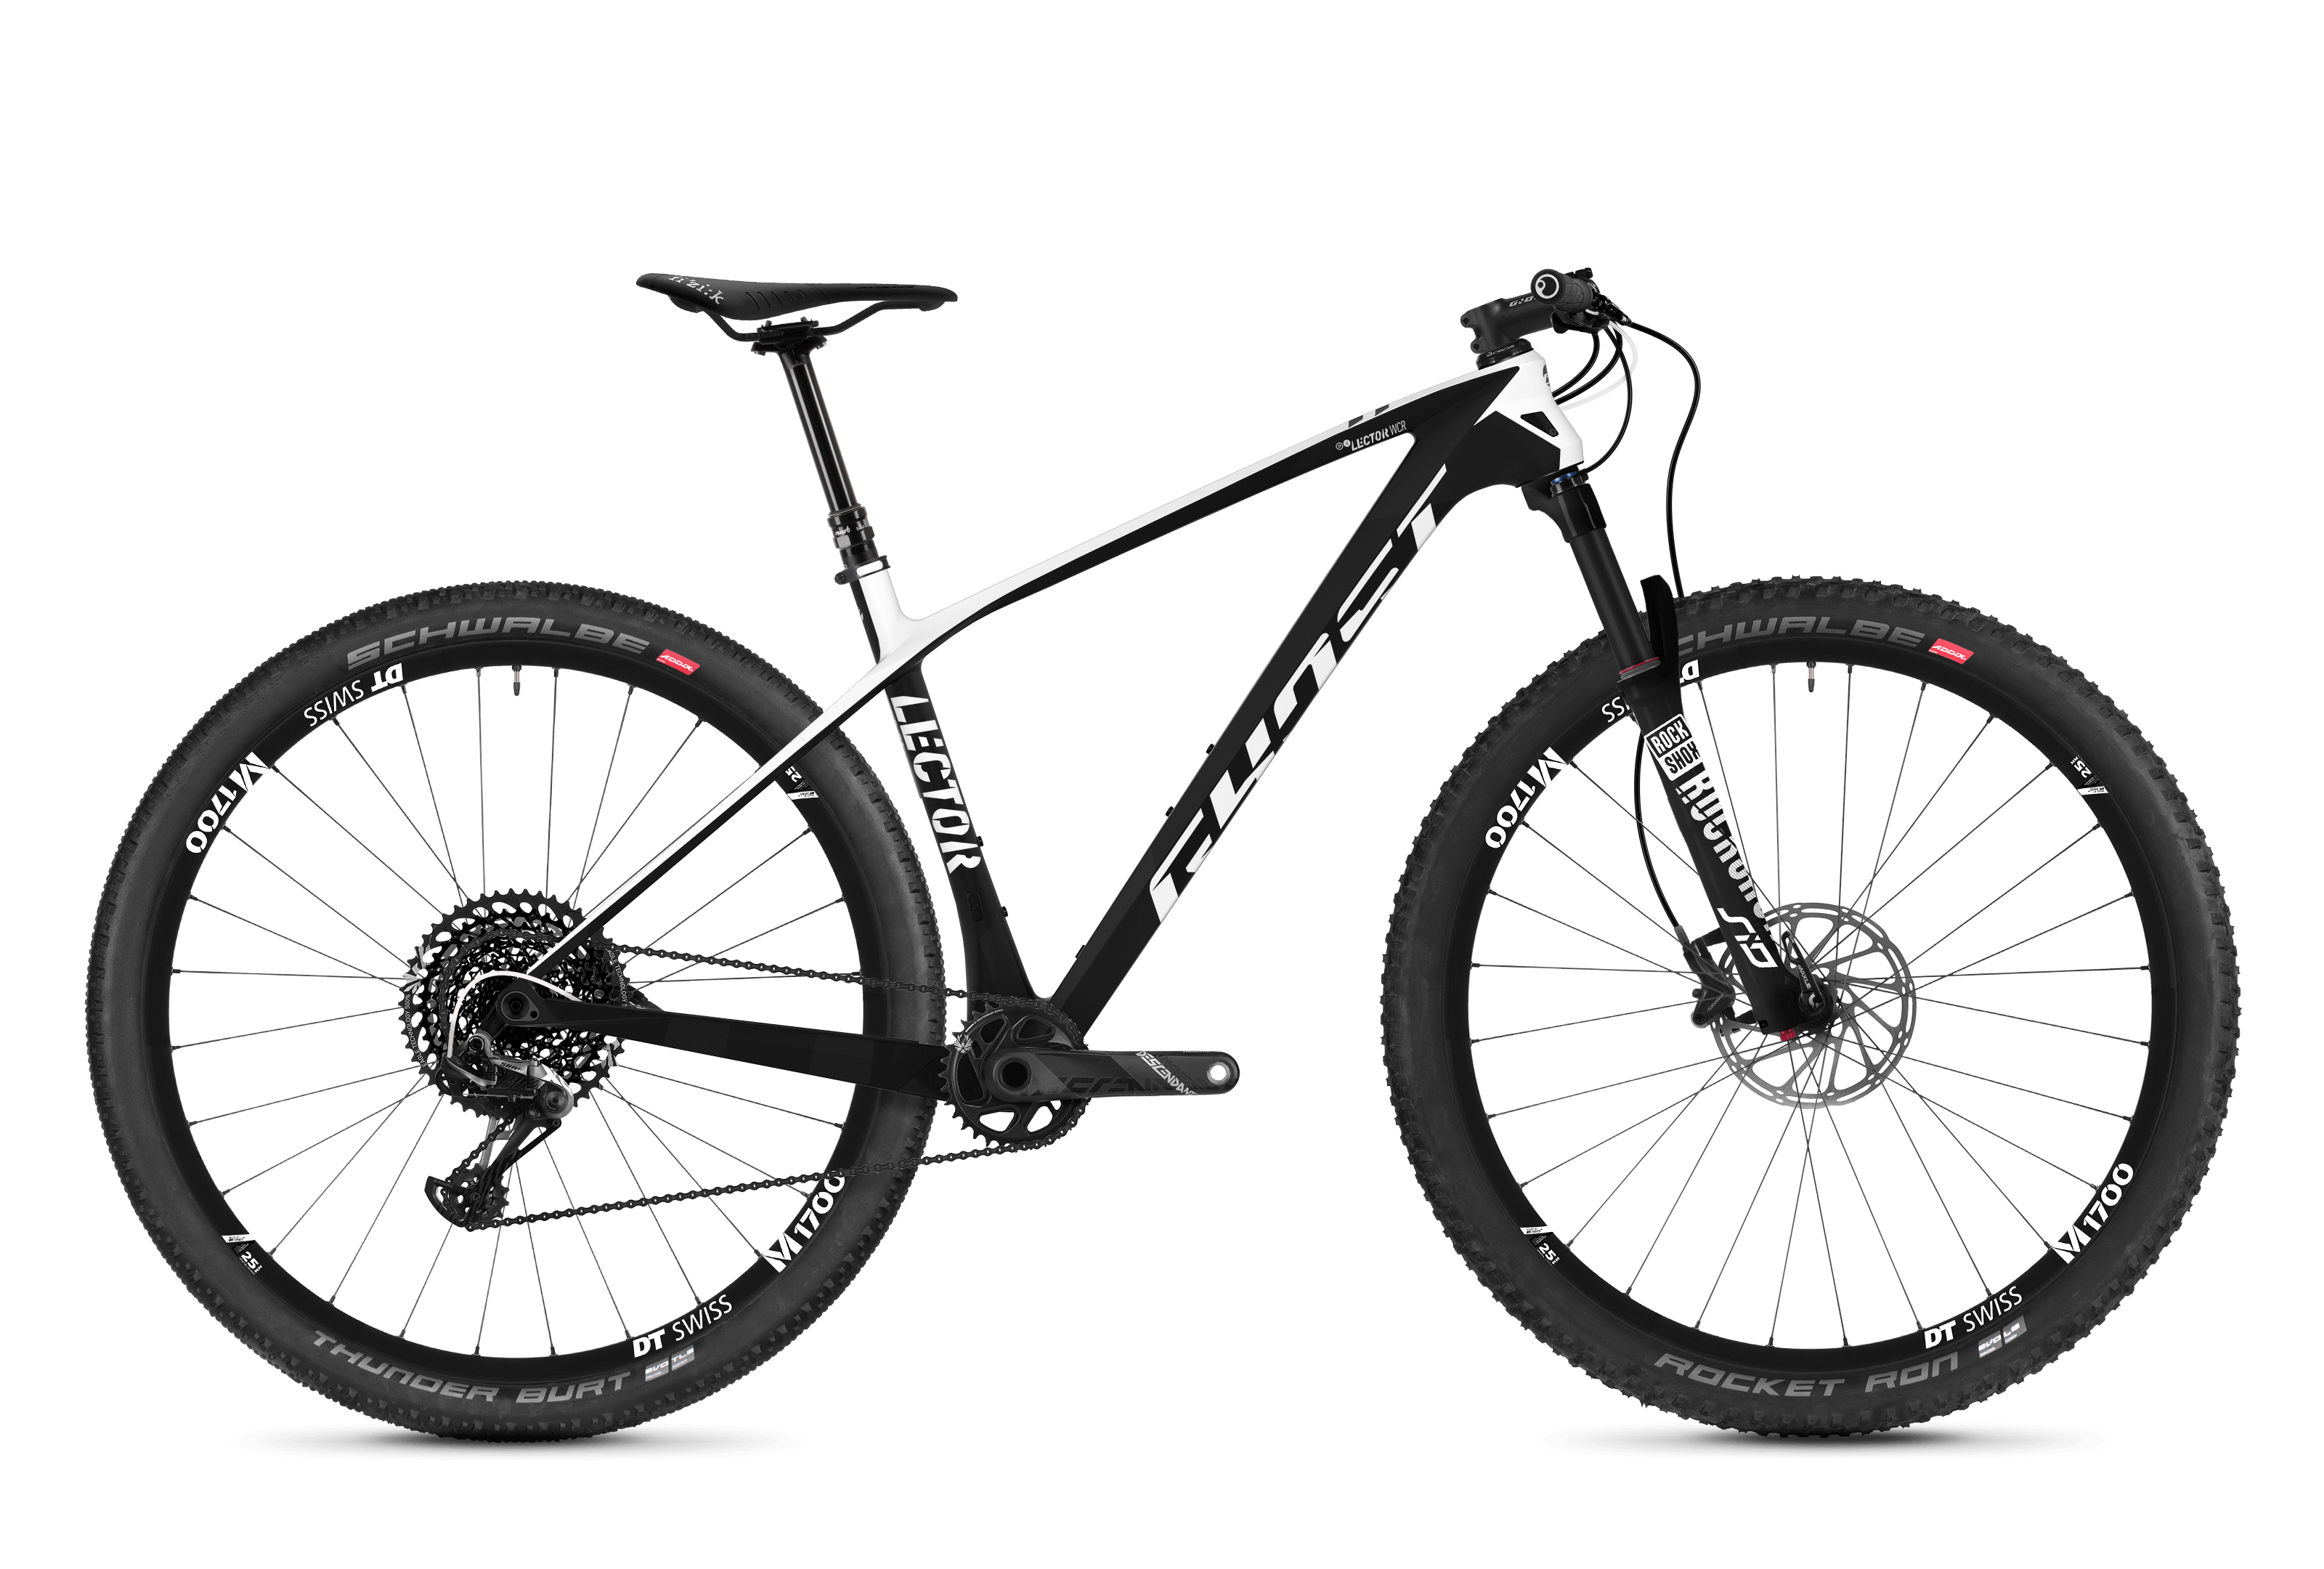 LECTOR WCR.9 LC Mountainbike MTB / Fahrrad Hardtail GHOST